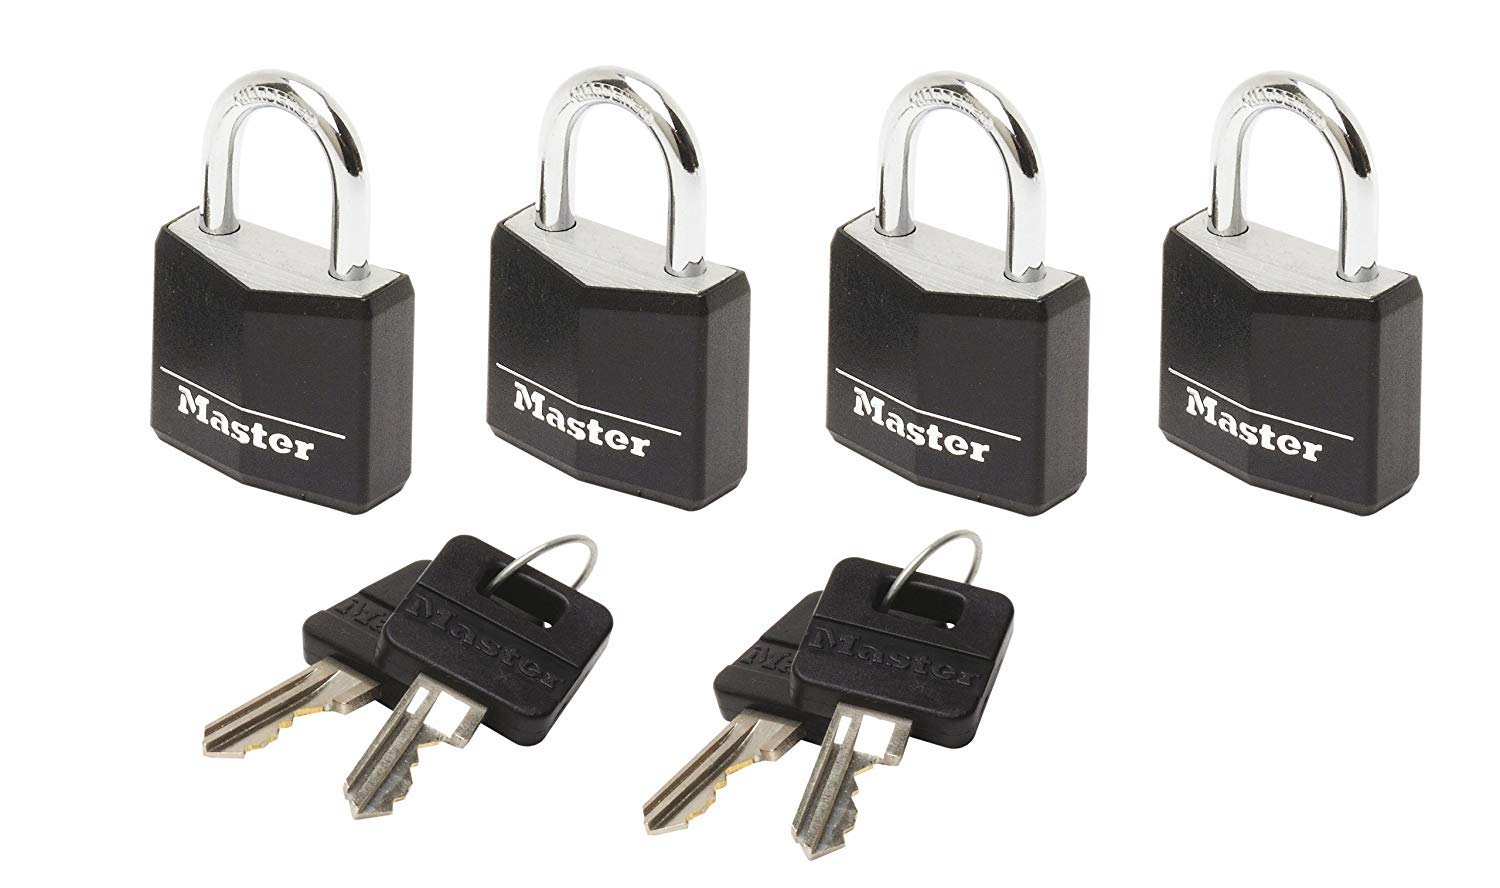 Master lock Luggage Lock 4 x Vinyl Covered Aluminium Padlocks Keyed Alike Black 9120EURQBLKNOP